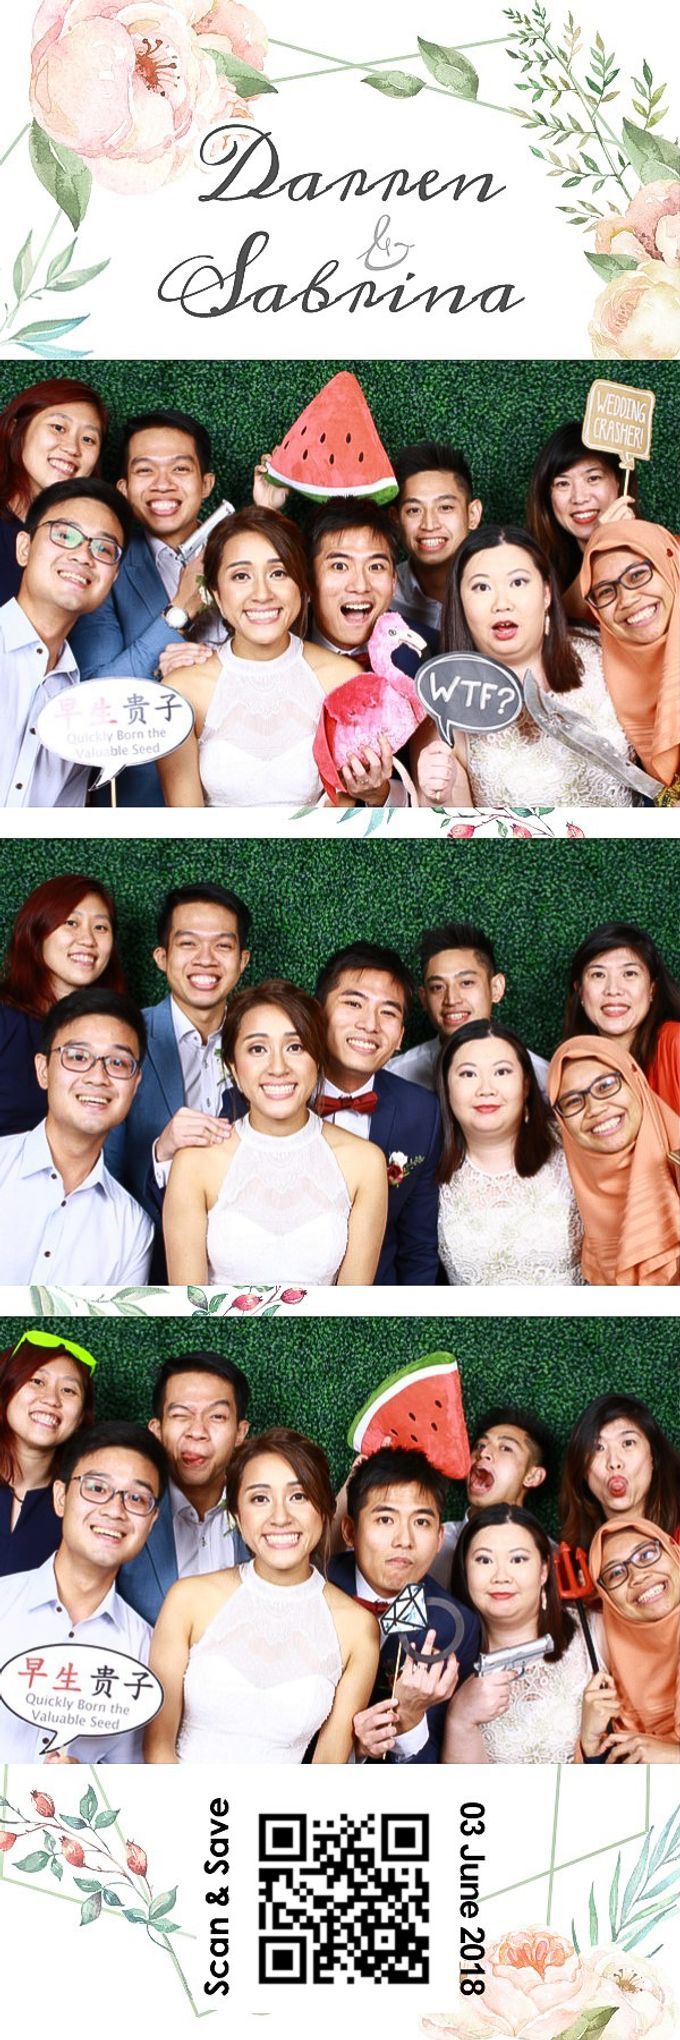 Darren & Sabrina Wedding Photo Booth by Cloud Booth - 010